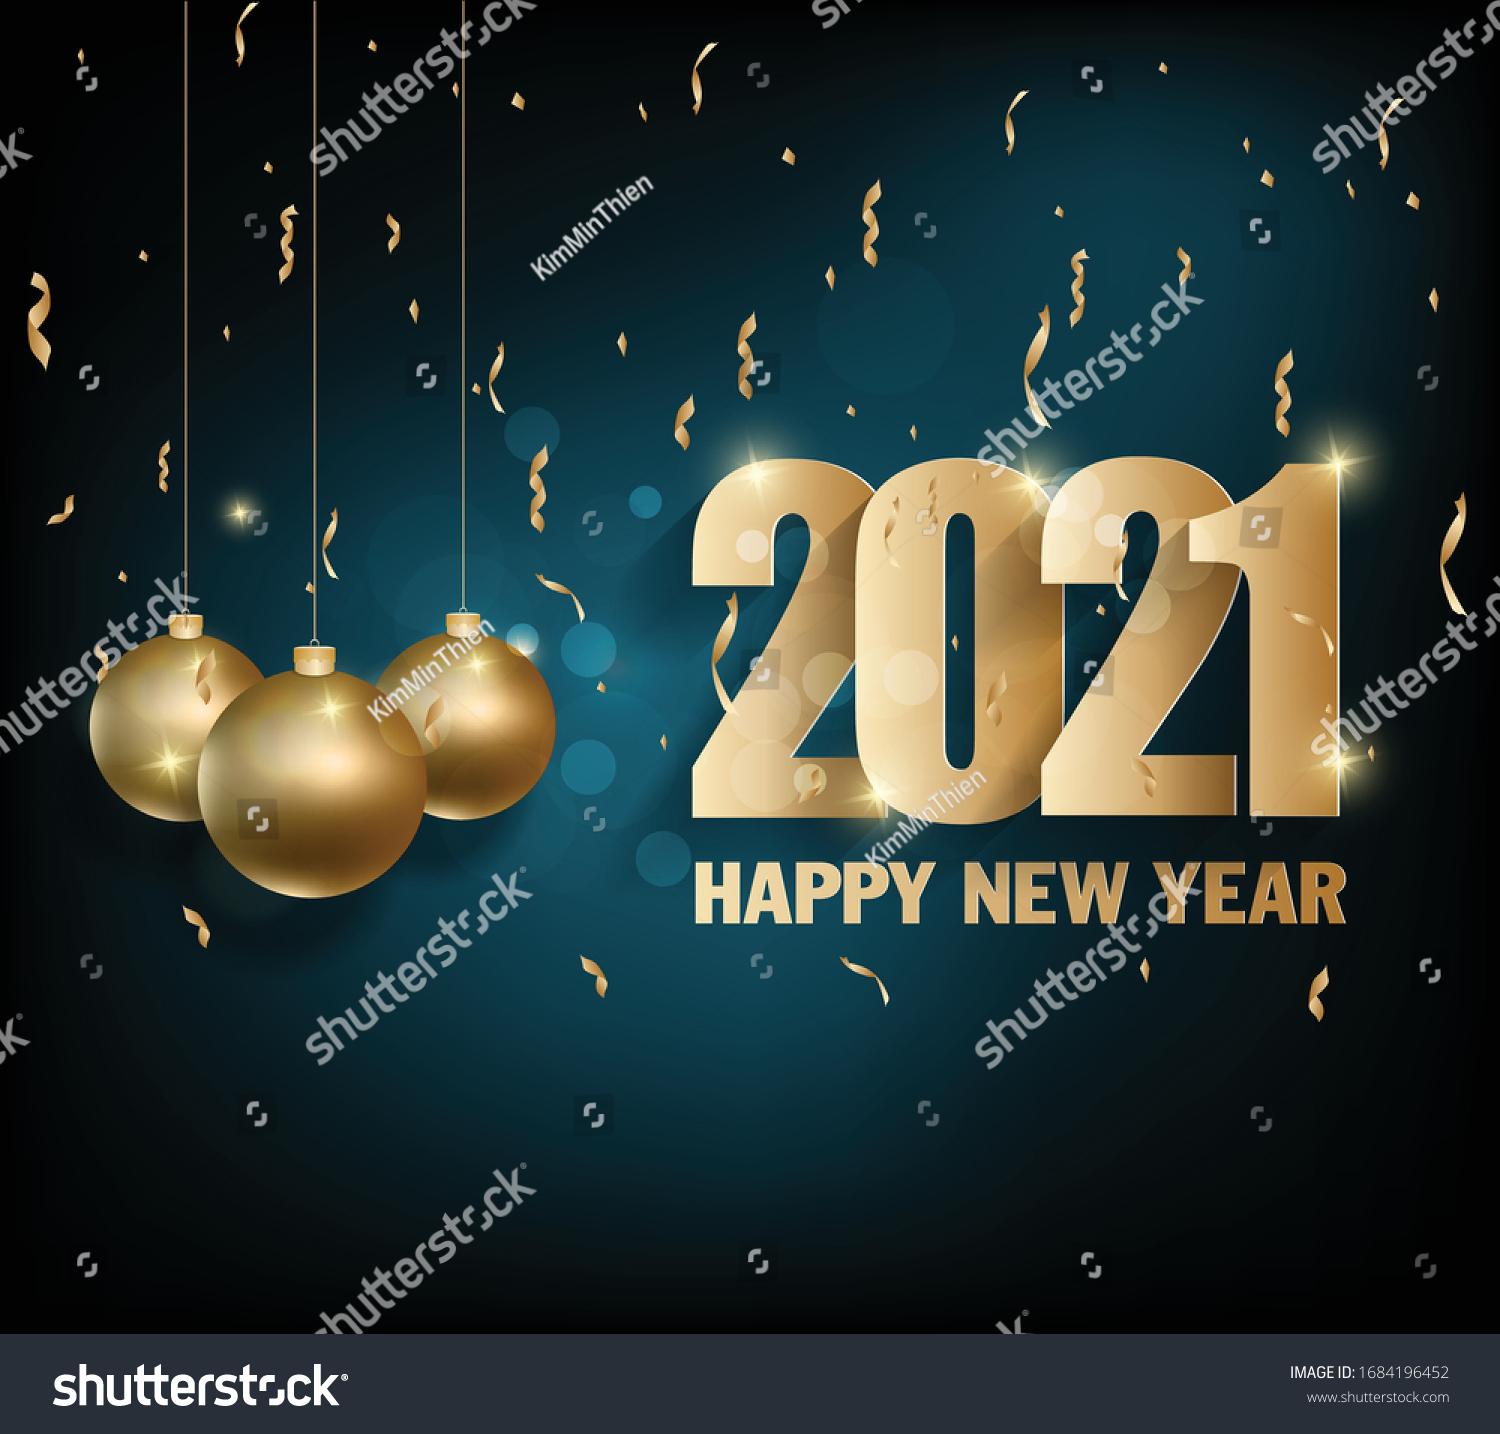 Merry Christmas & Happy New Year 2021 Banner Images Happy New Year 2021 Merry Christmas Stock Vector Royalty Free 1684196452